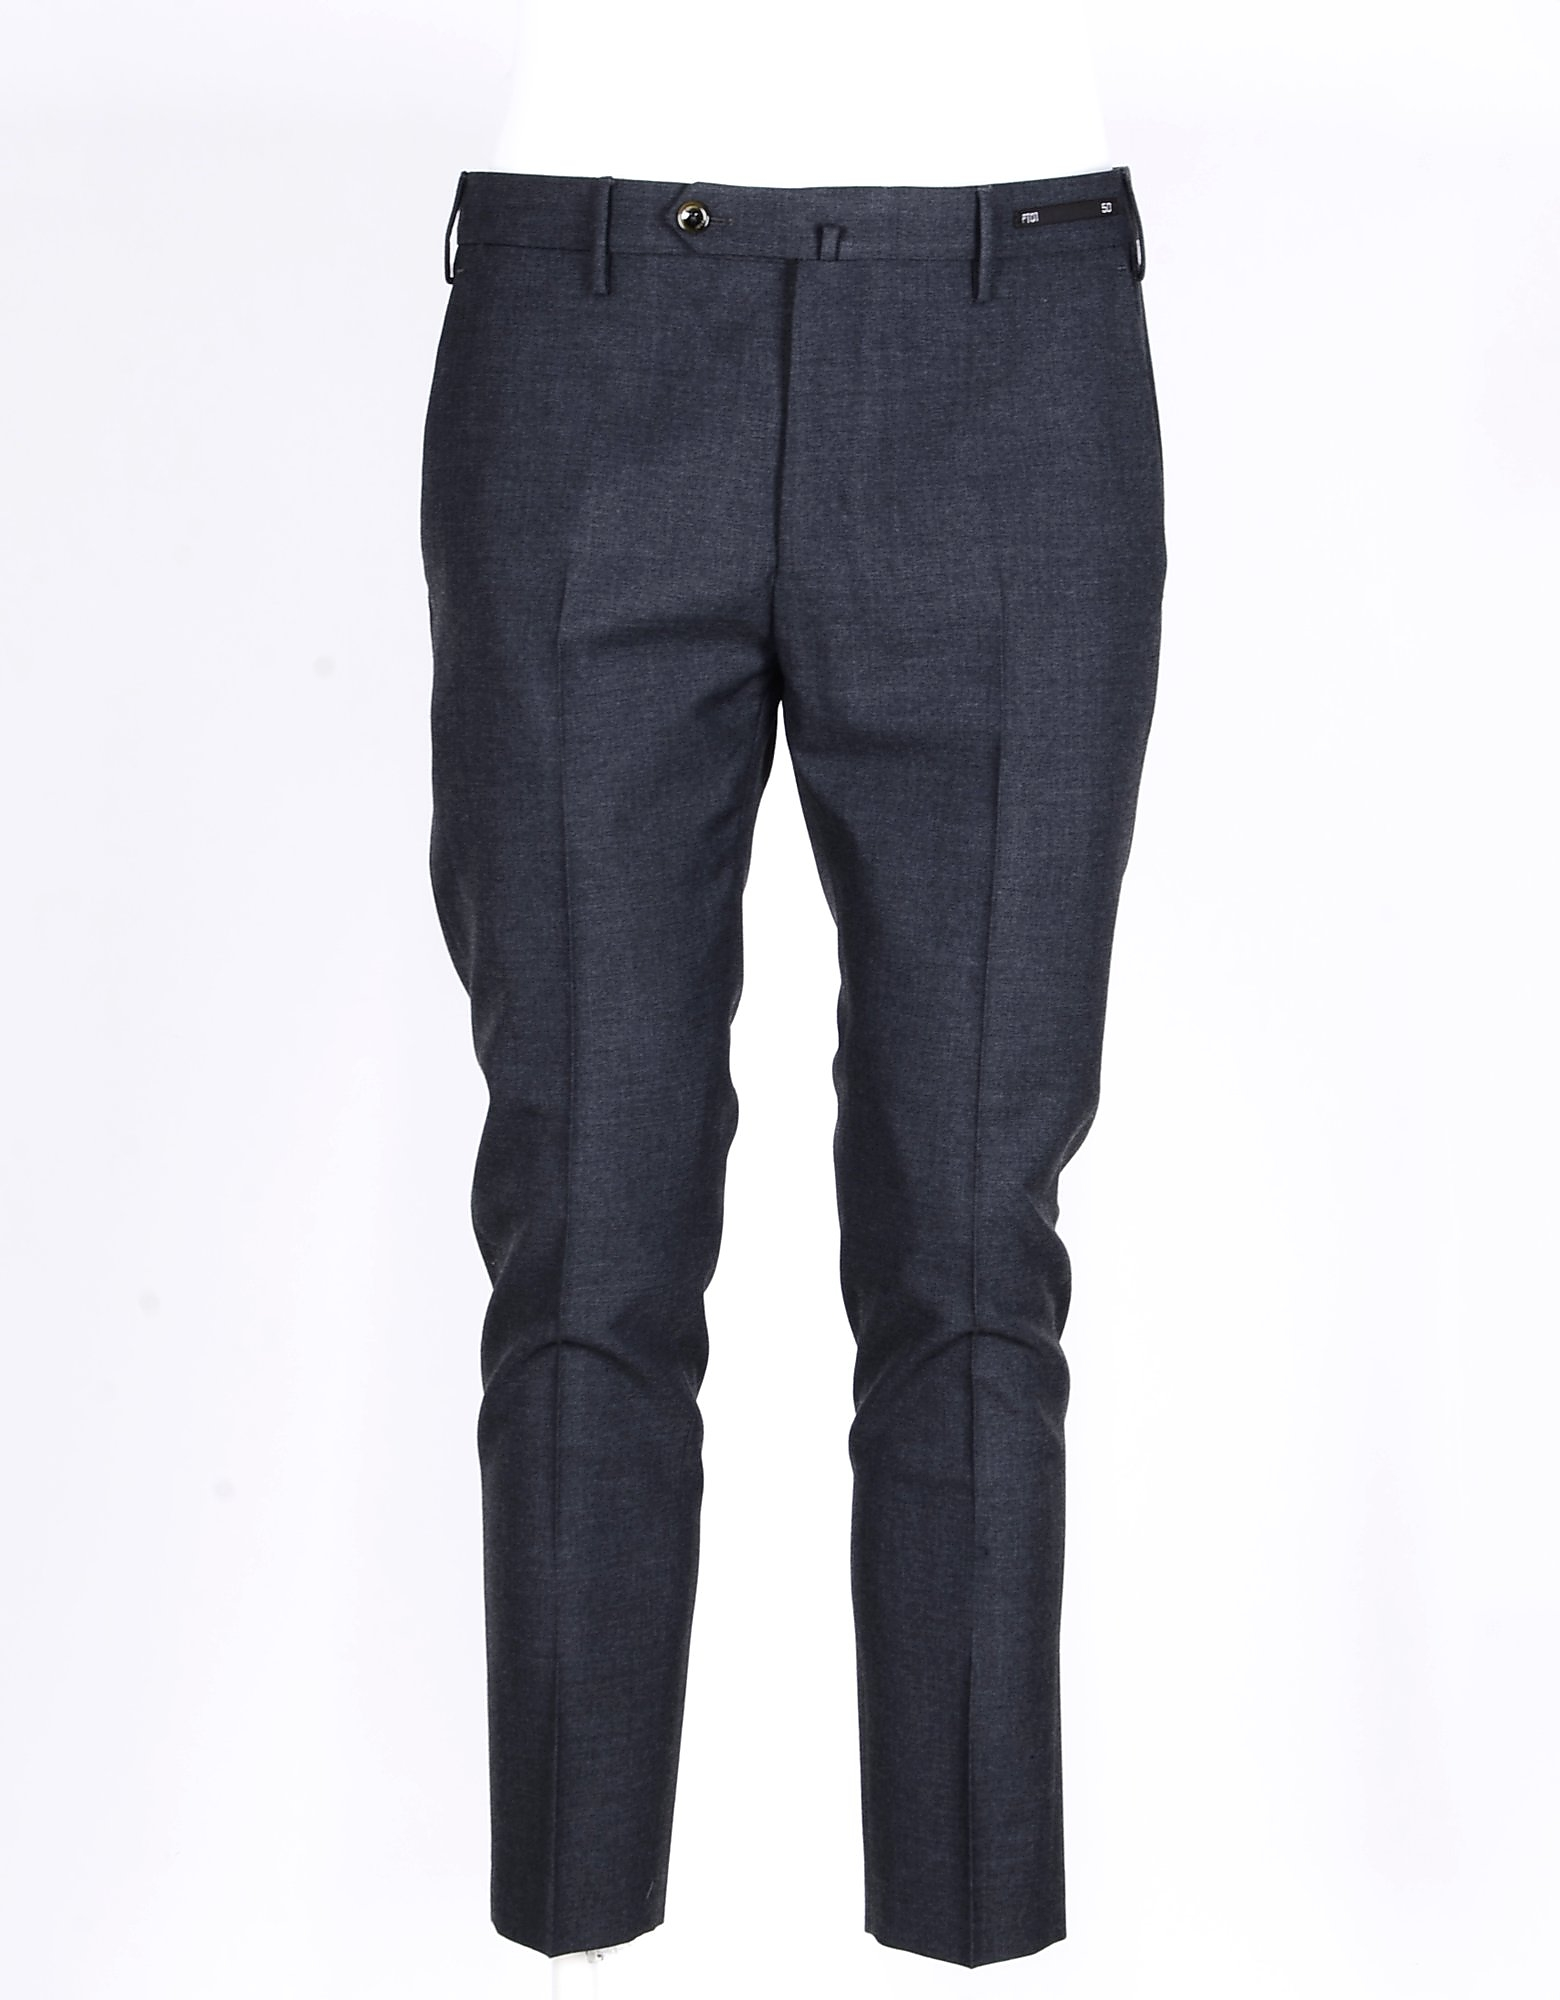 PT01 Designer Pants, Men's Gray Pants